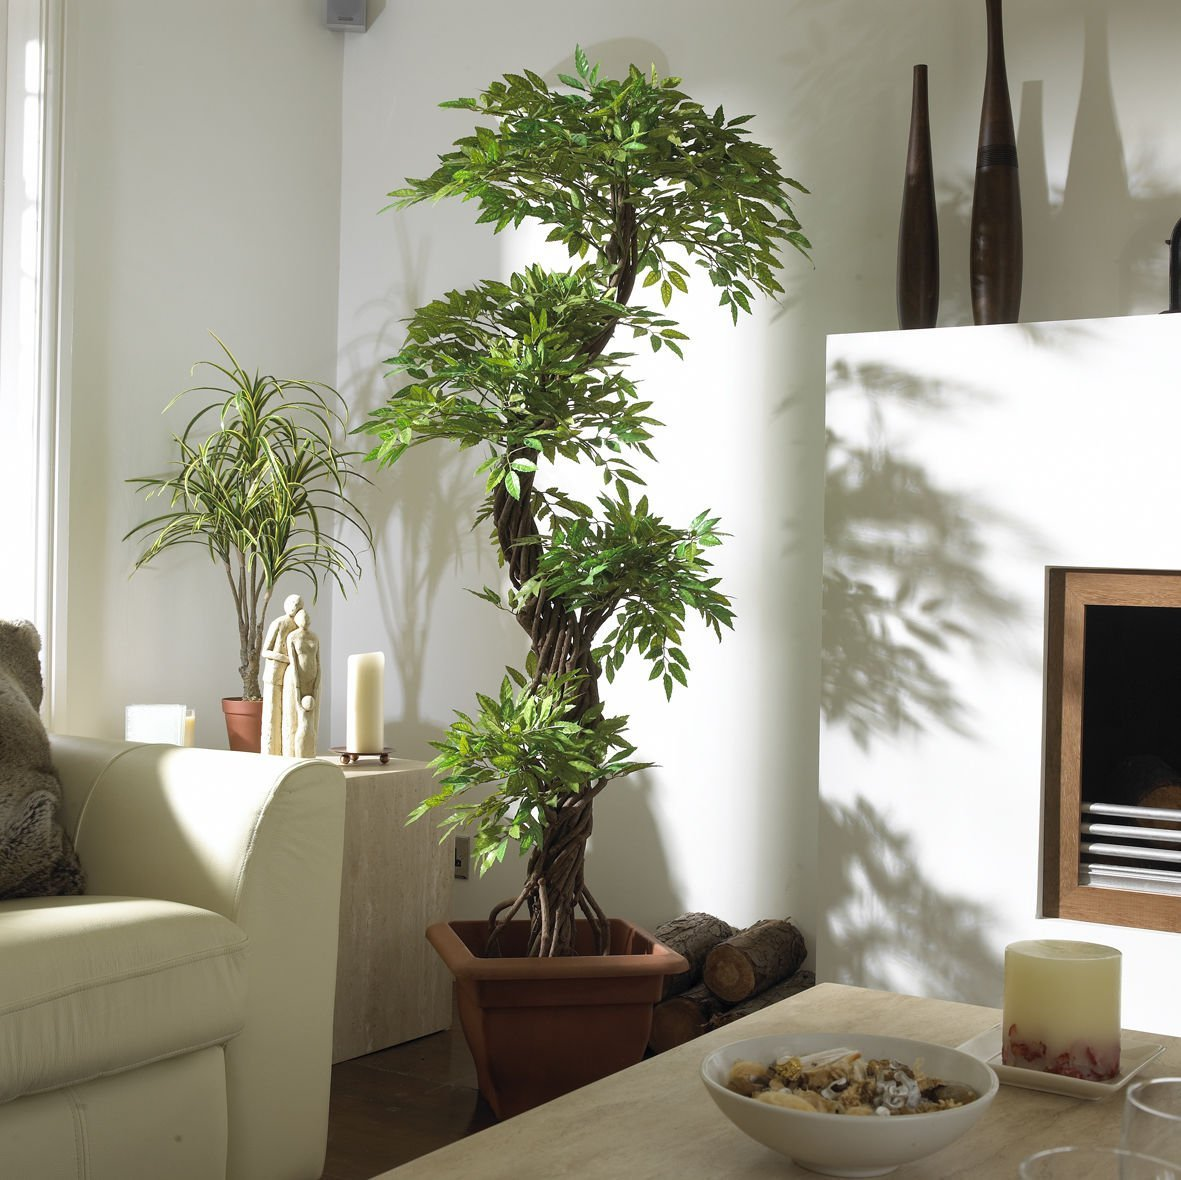 Plantas artificiais a saga do apartamento - Plantas artificiales decorativas ...